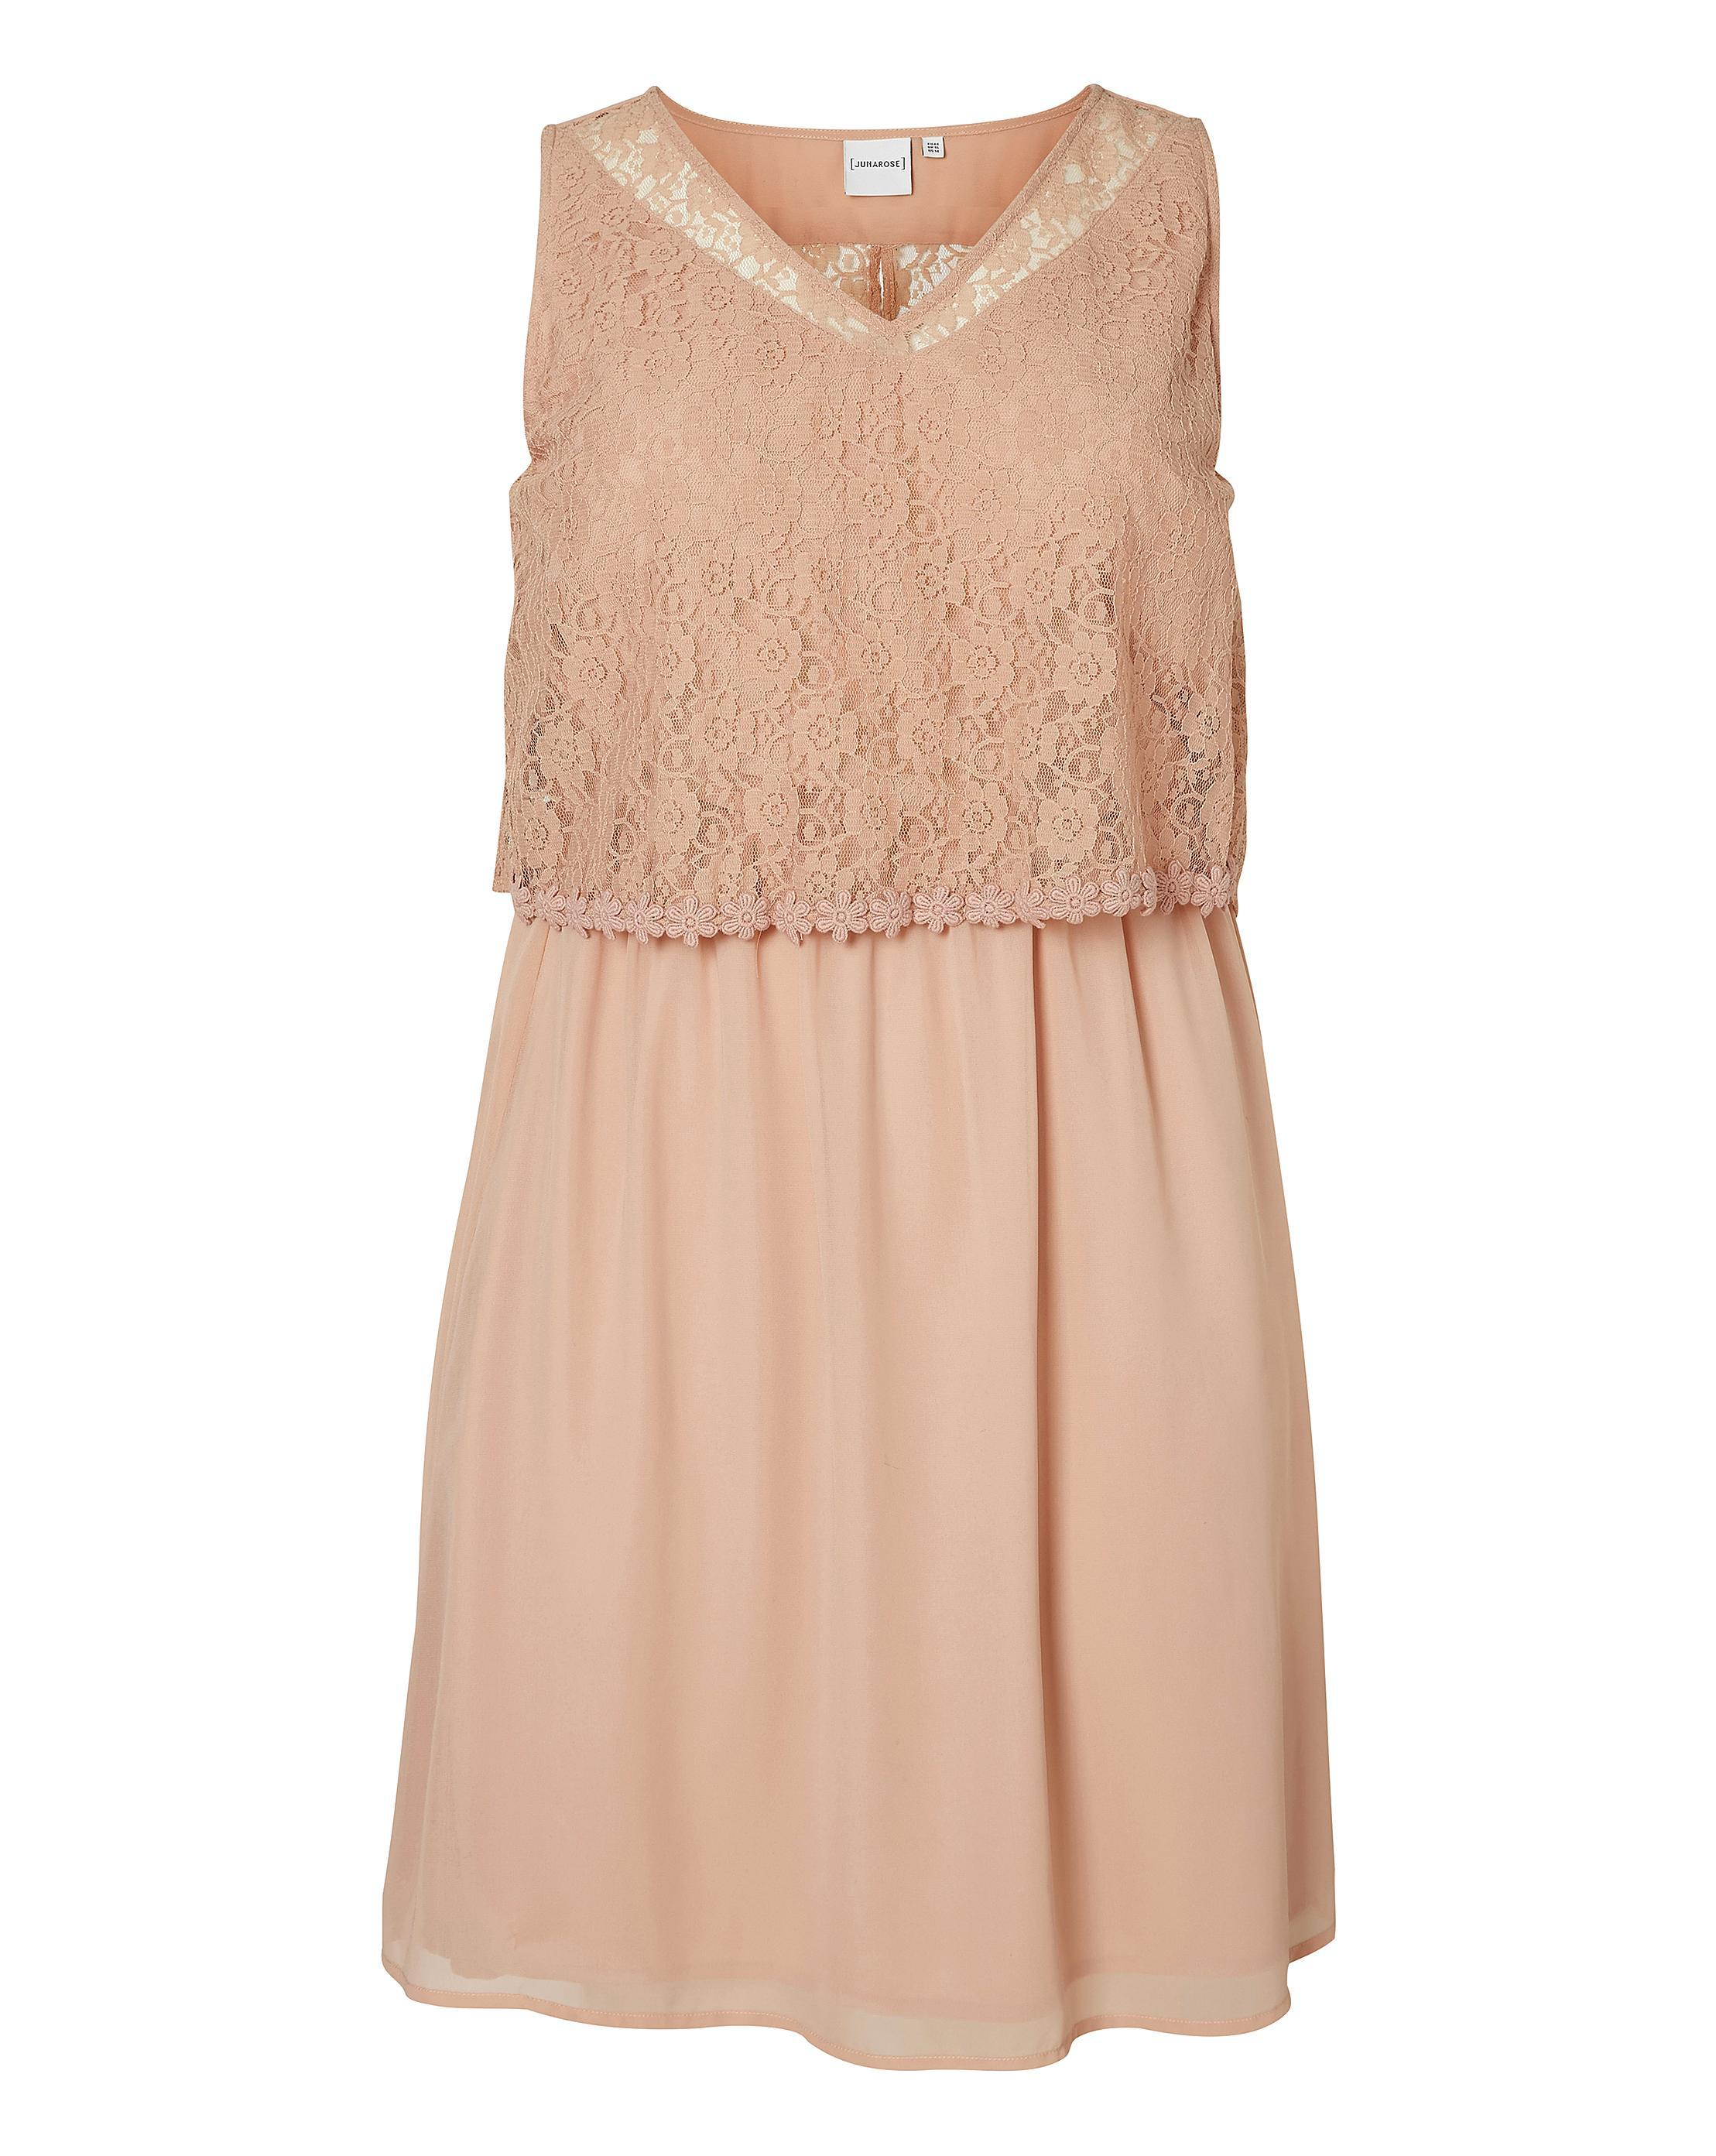 51a1a7e96f5 Lyst - Simply Be Junarose Lace-top Dress in Pink